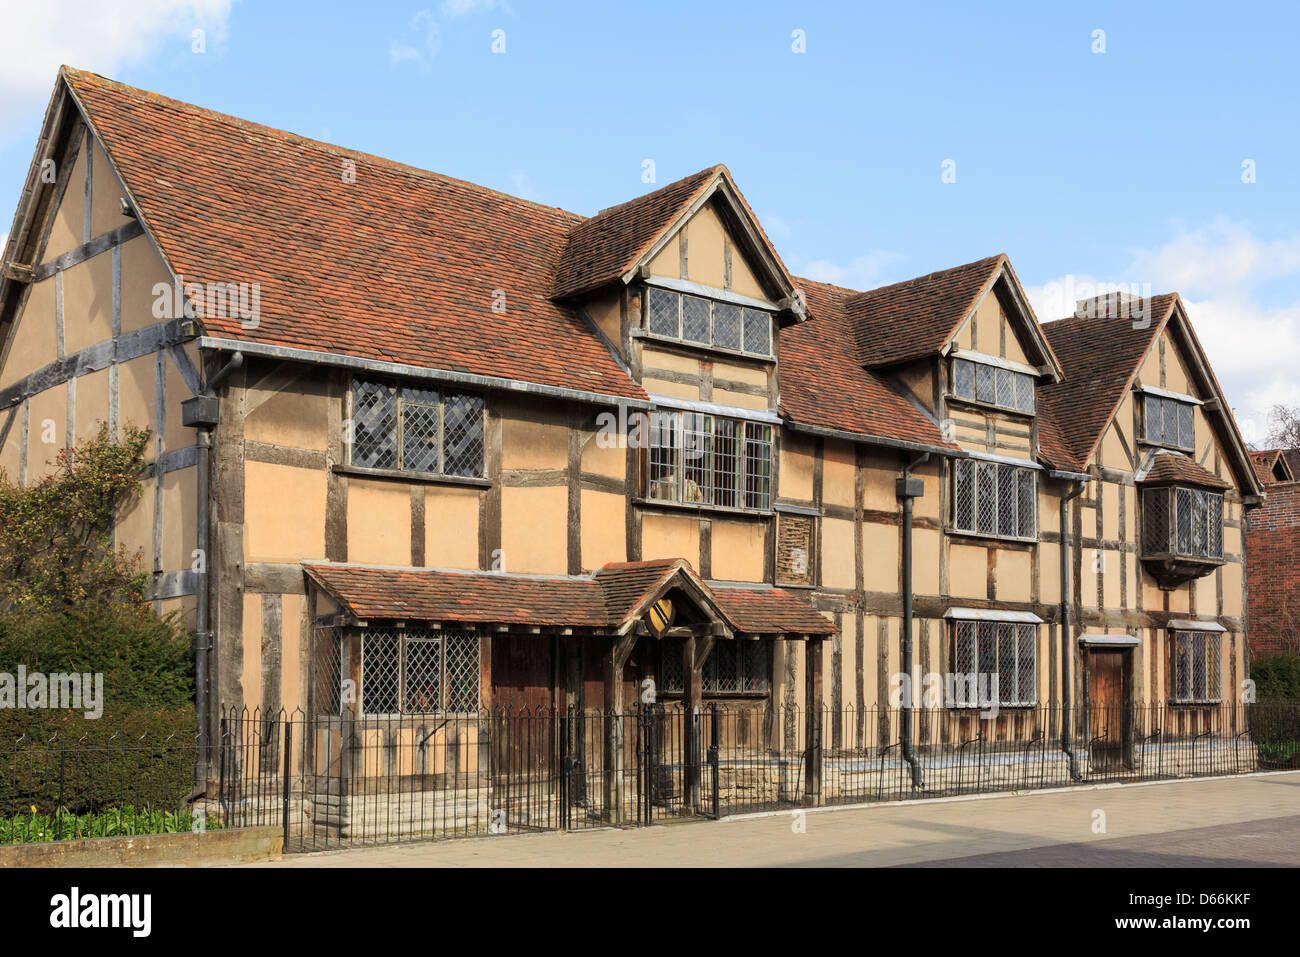 shakespeare 39 s birthplace 16thc half timbered old house now a museum stock photo royalty free. Black Bedroom Furniture Sets. Home Design Ideas